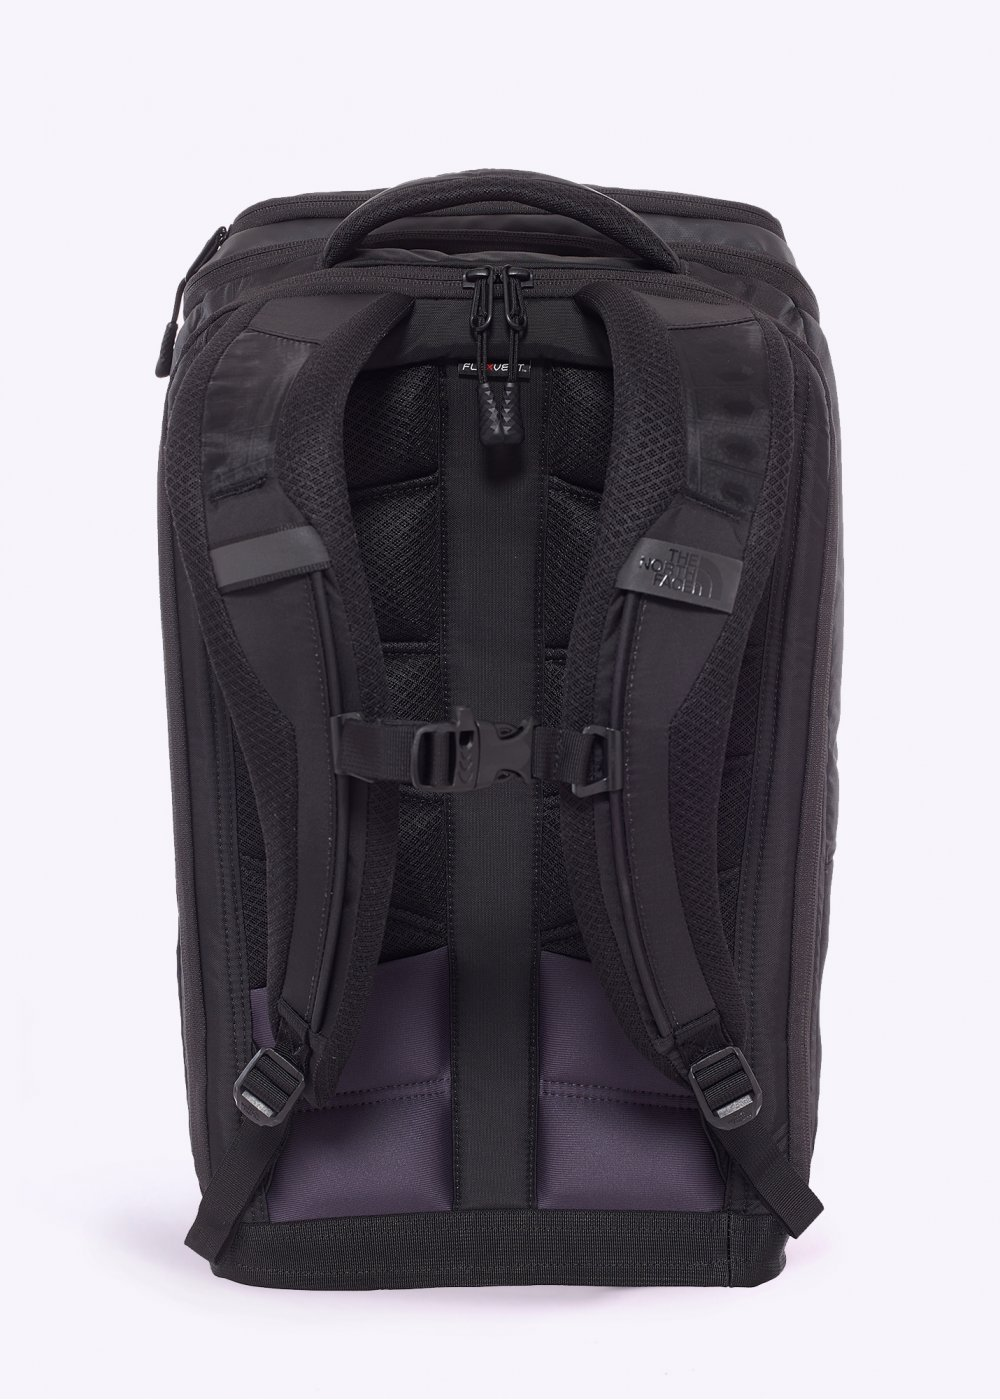 1444143258-53559100 North Face Fuse Box Backpack on